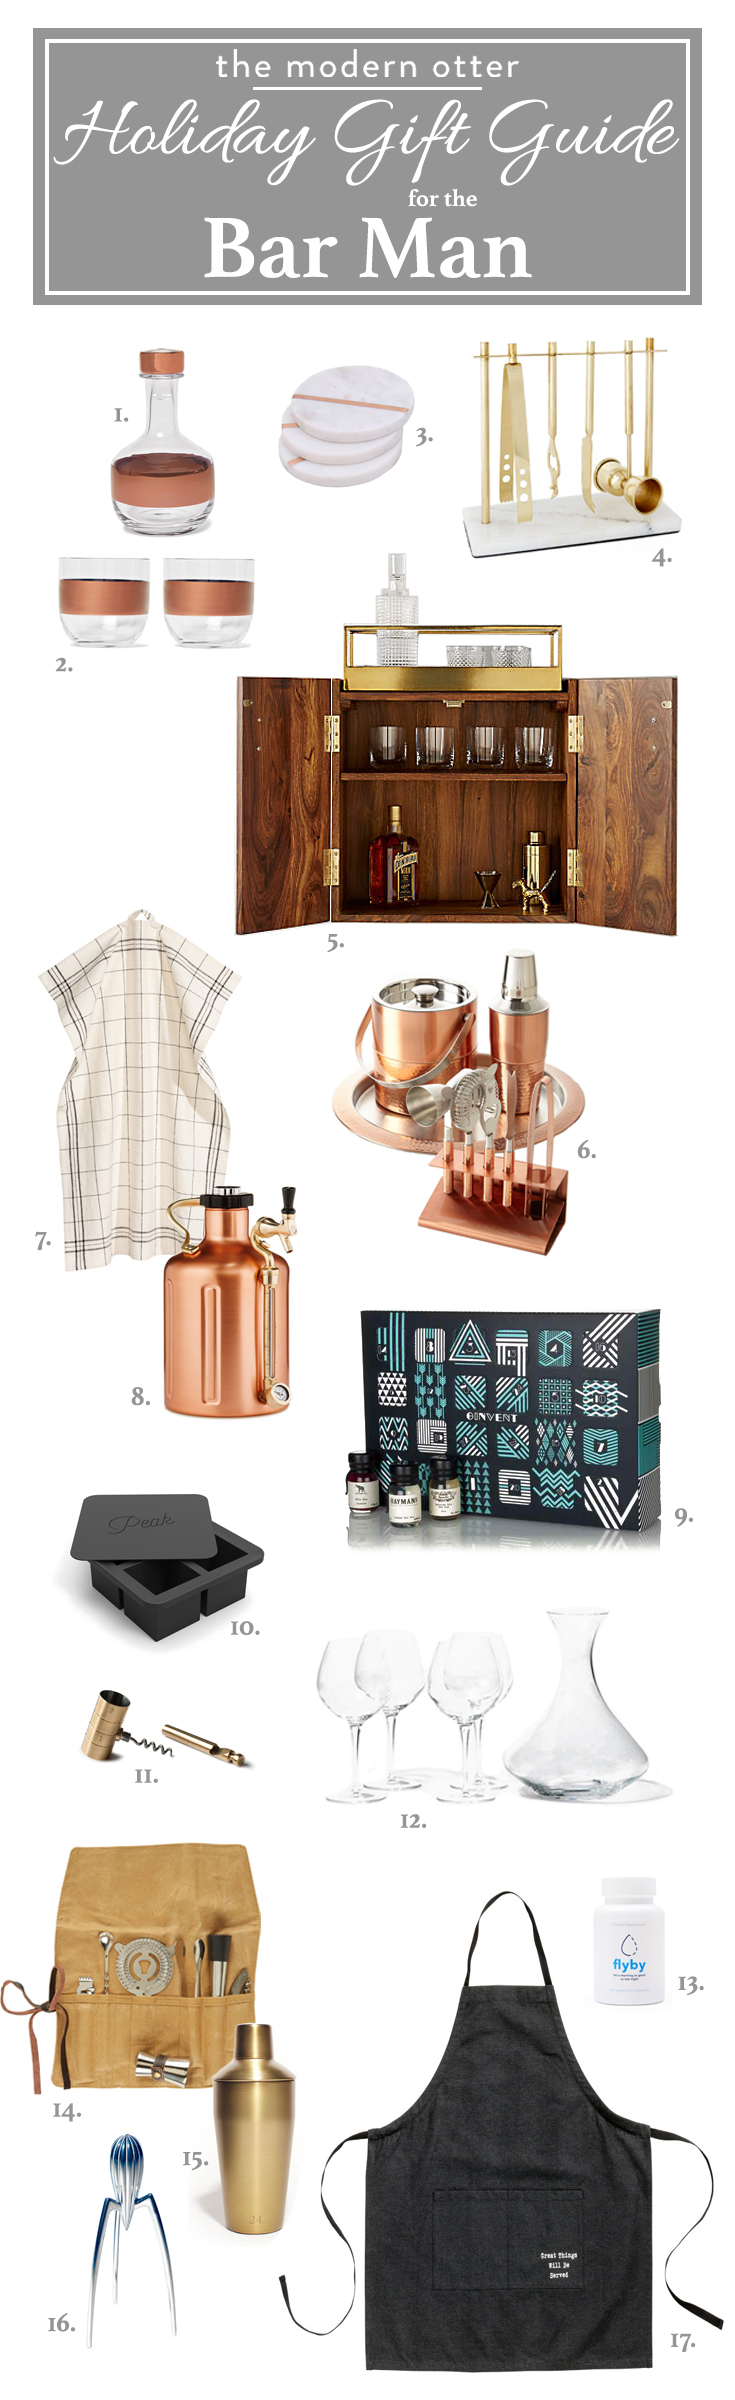 The Modern Otter Holiday Gift Guide for the Bar Man